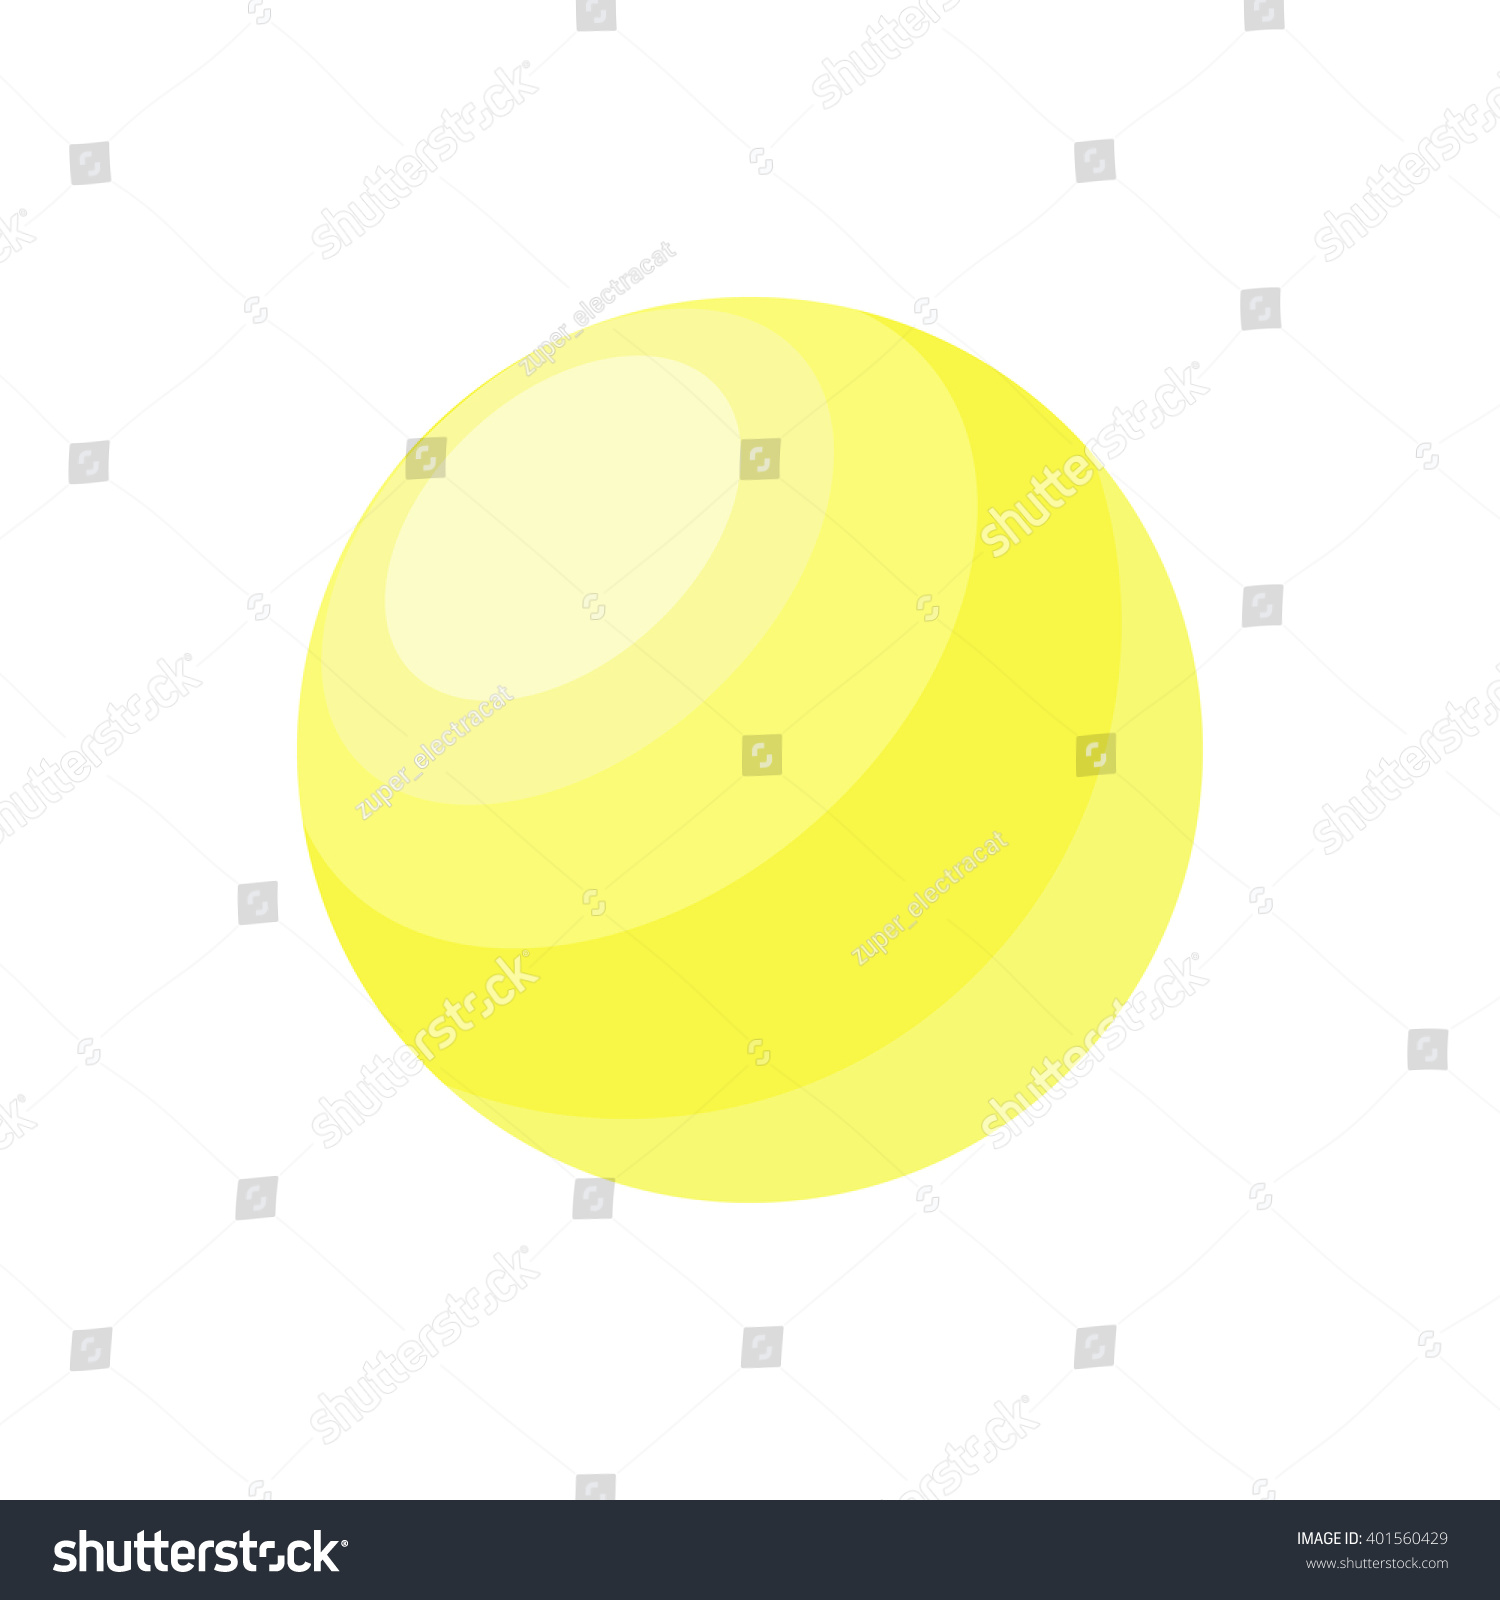 Abstract 3d Yellow Sphere Vector Illustration Stock Vector 401560429 ...